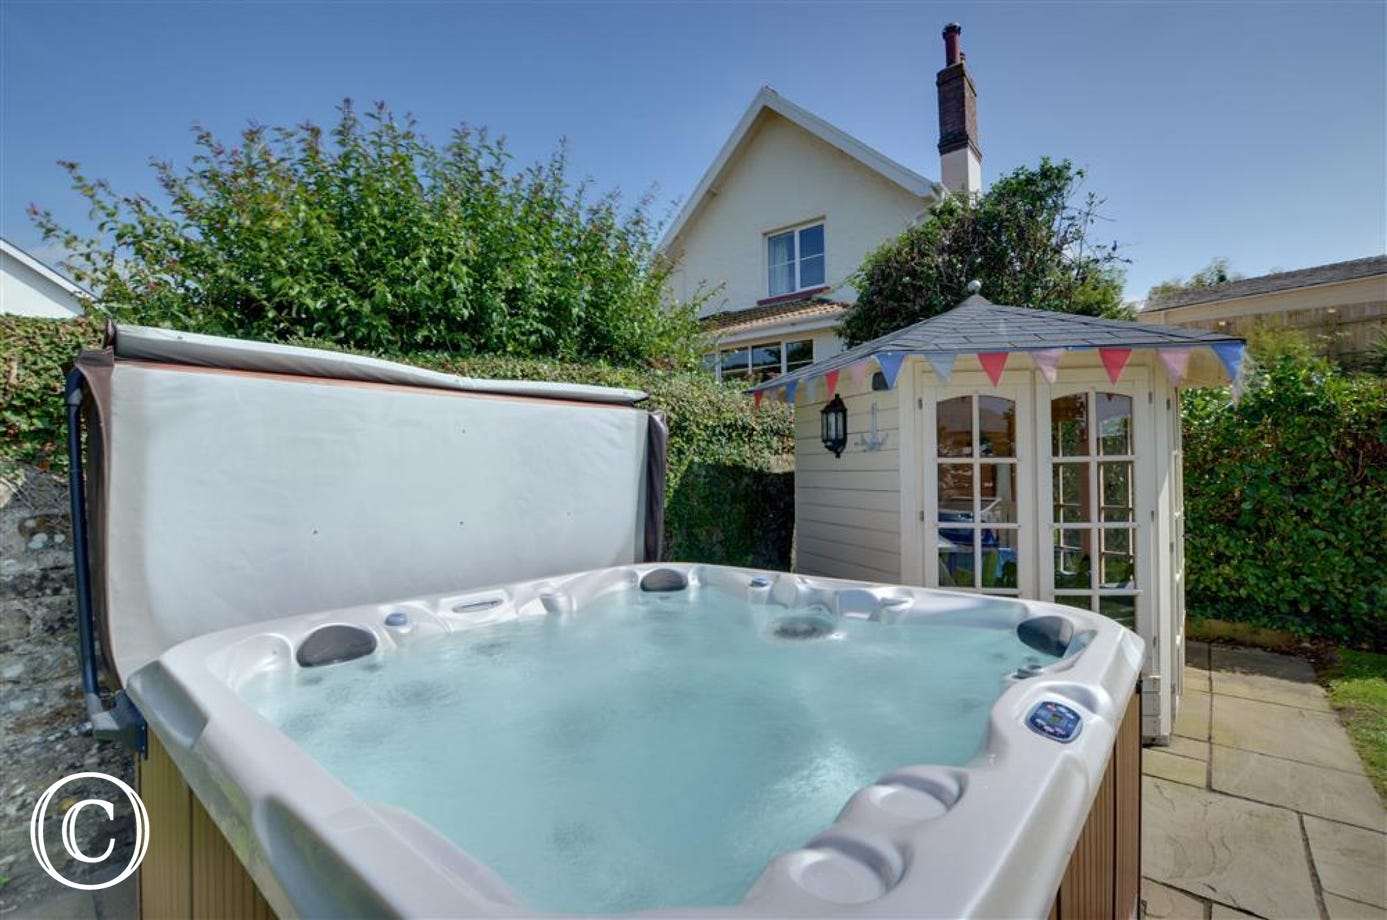 The added benefit of a hot tub in the garden provides an ideal spot for relaxing